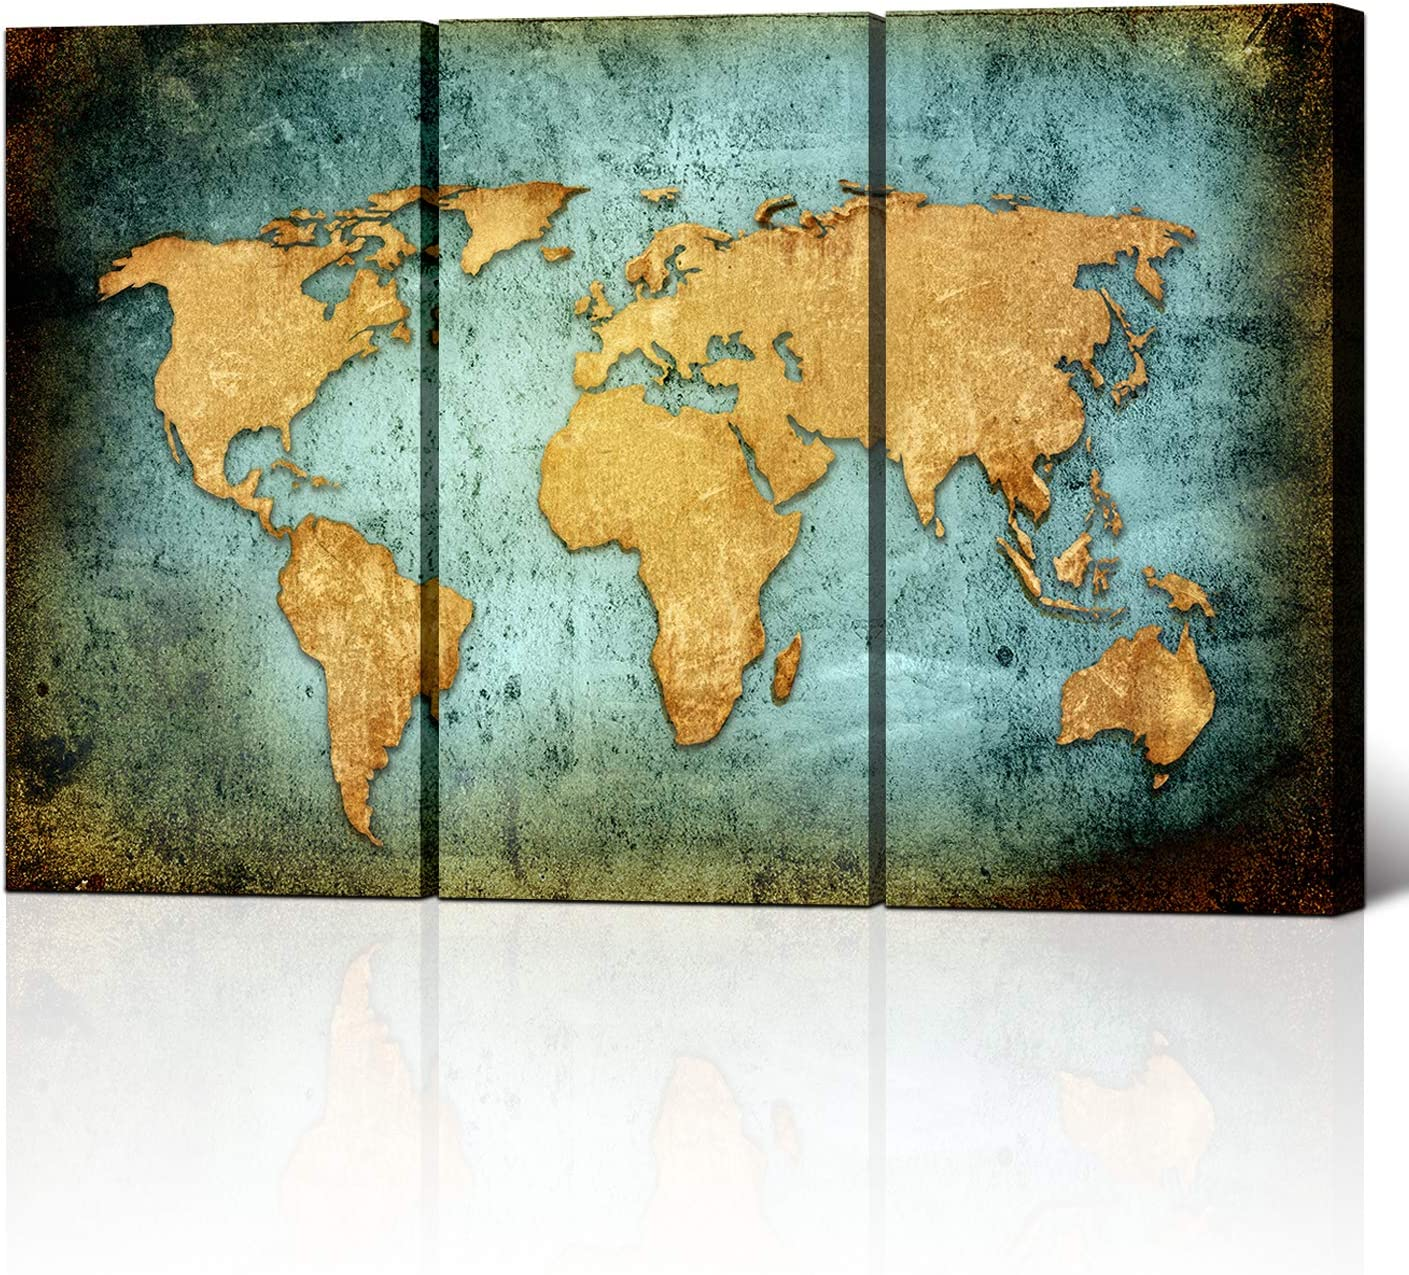 Large Size Vintage World Map Poster Printed On Canvas,Blue Sea Yellow Map Printing Mural Art For Wall ,Framed and Stretched,World Map Canvas Prints for Living Room,Office,Hotel,Ready to Hang